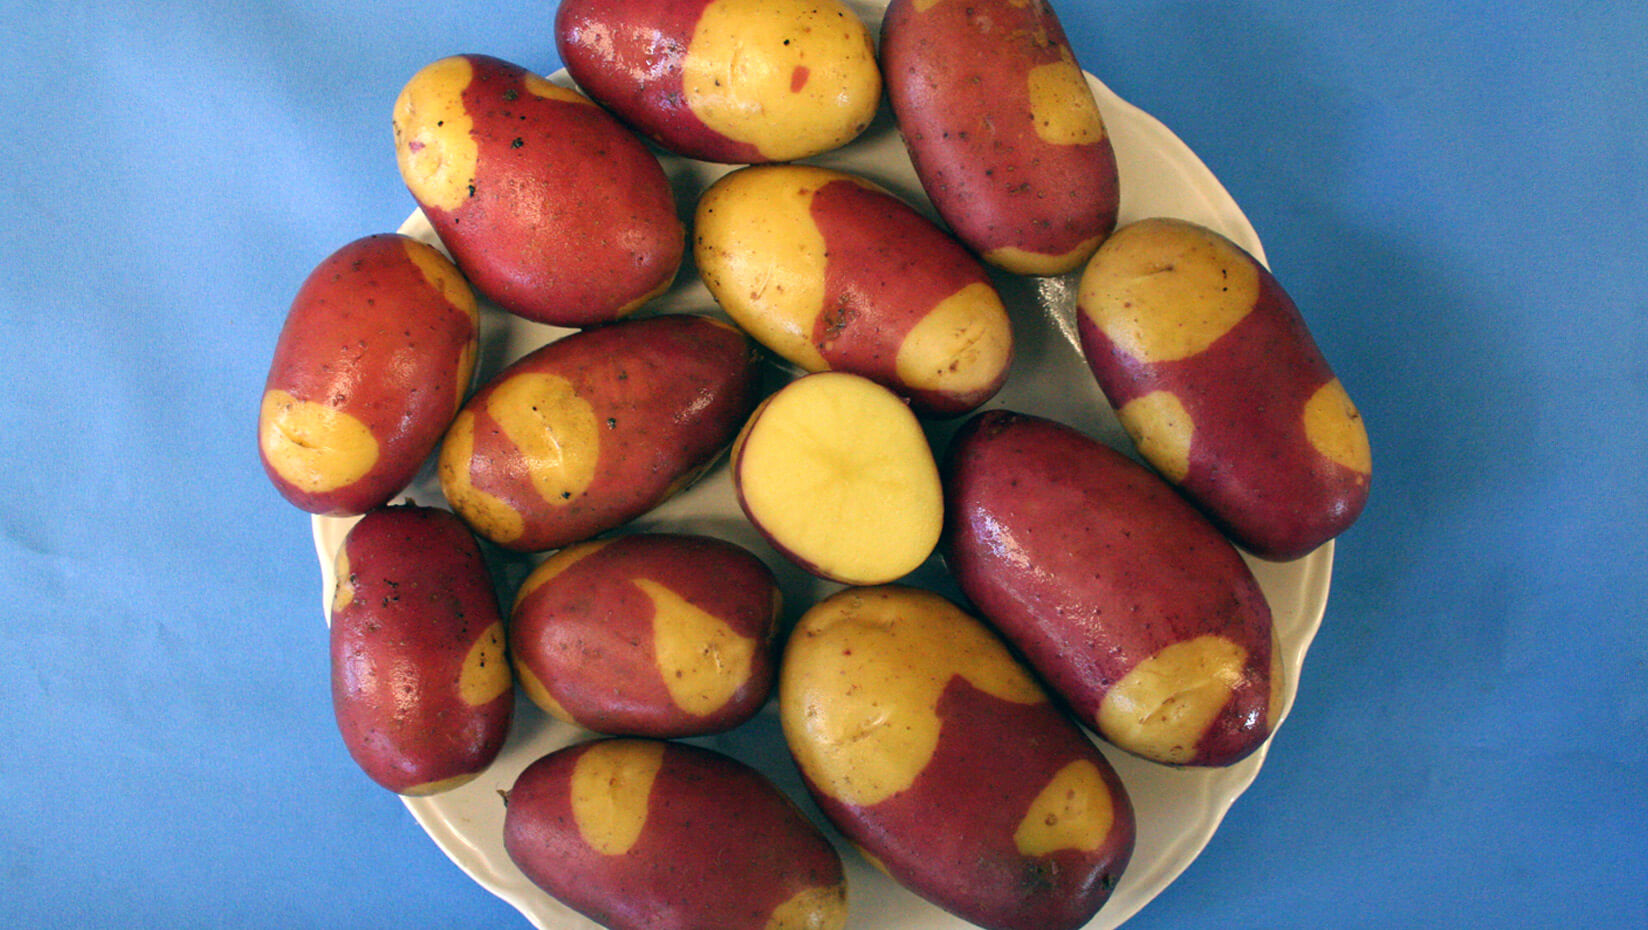 featured image for UMaine develops new potato variety for gourmet, specialty markets